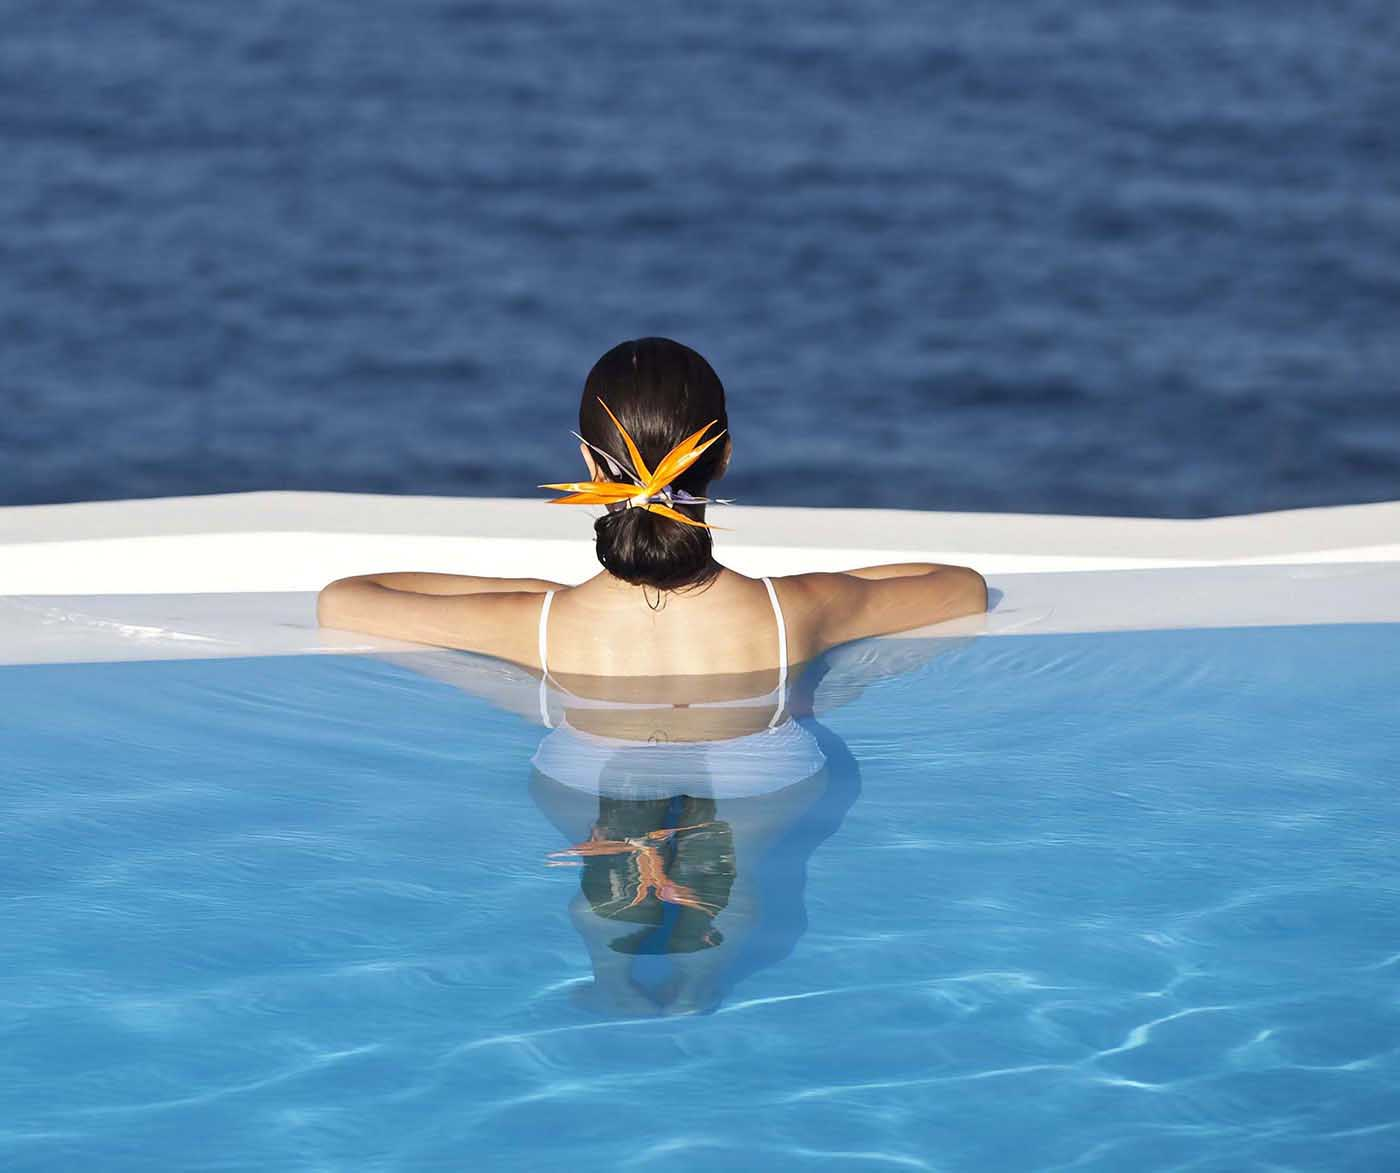 Amnissos hotels & resorts, 50% discount for early bookings, Amnissos, Heraklion, Crete, Greece